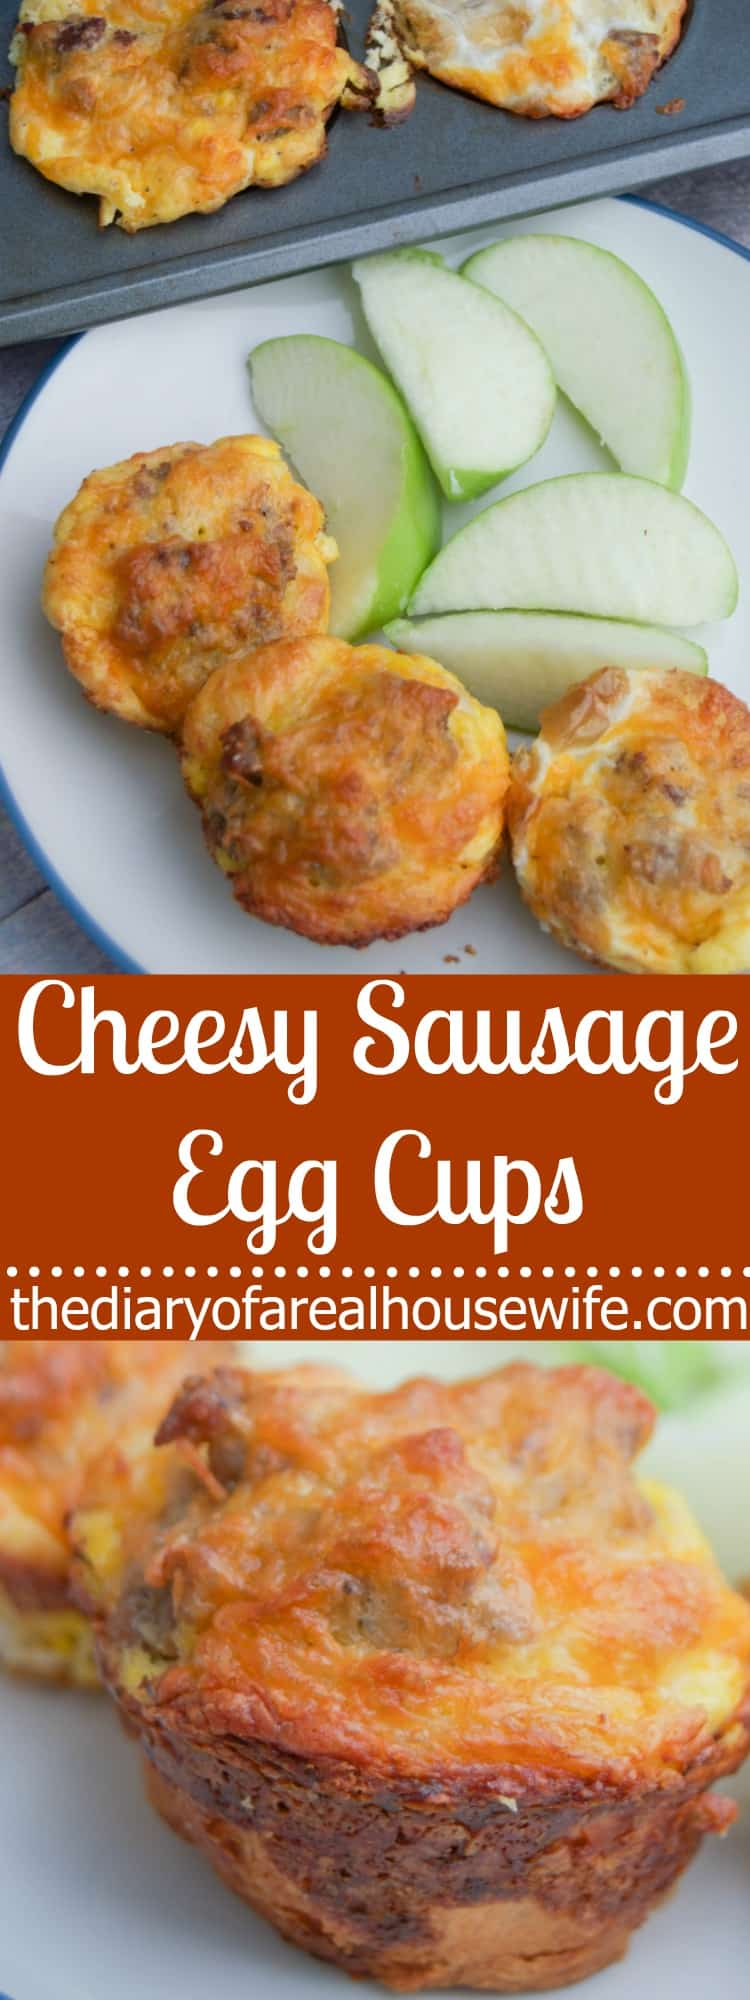 Cheesy Sausage Egg Cups